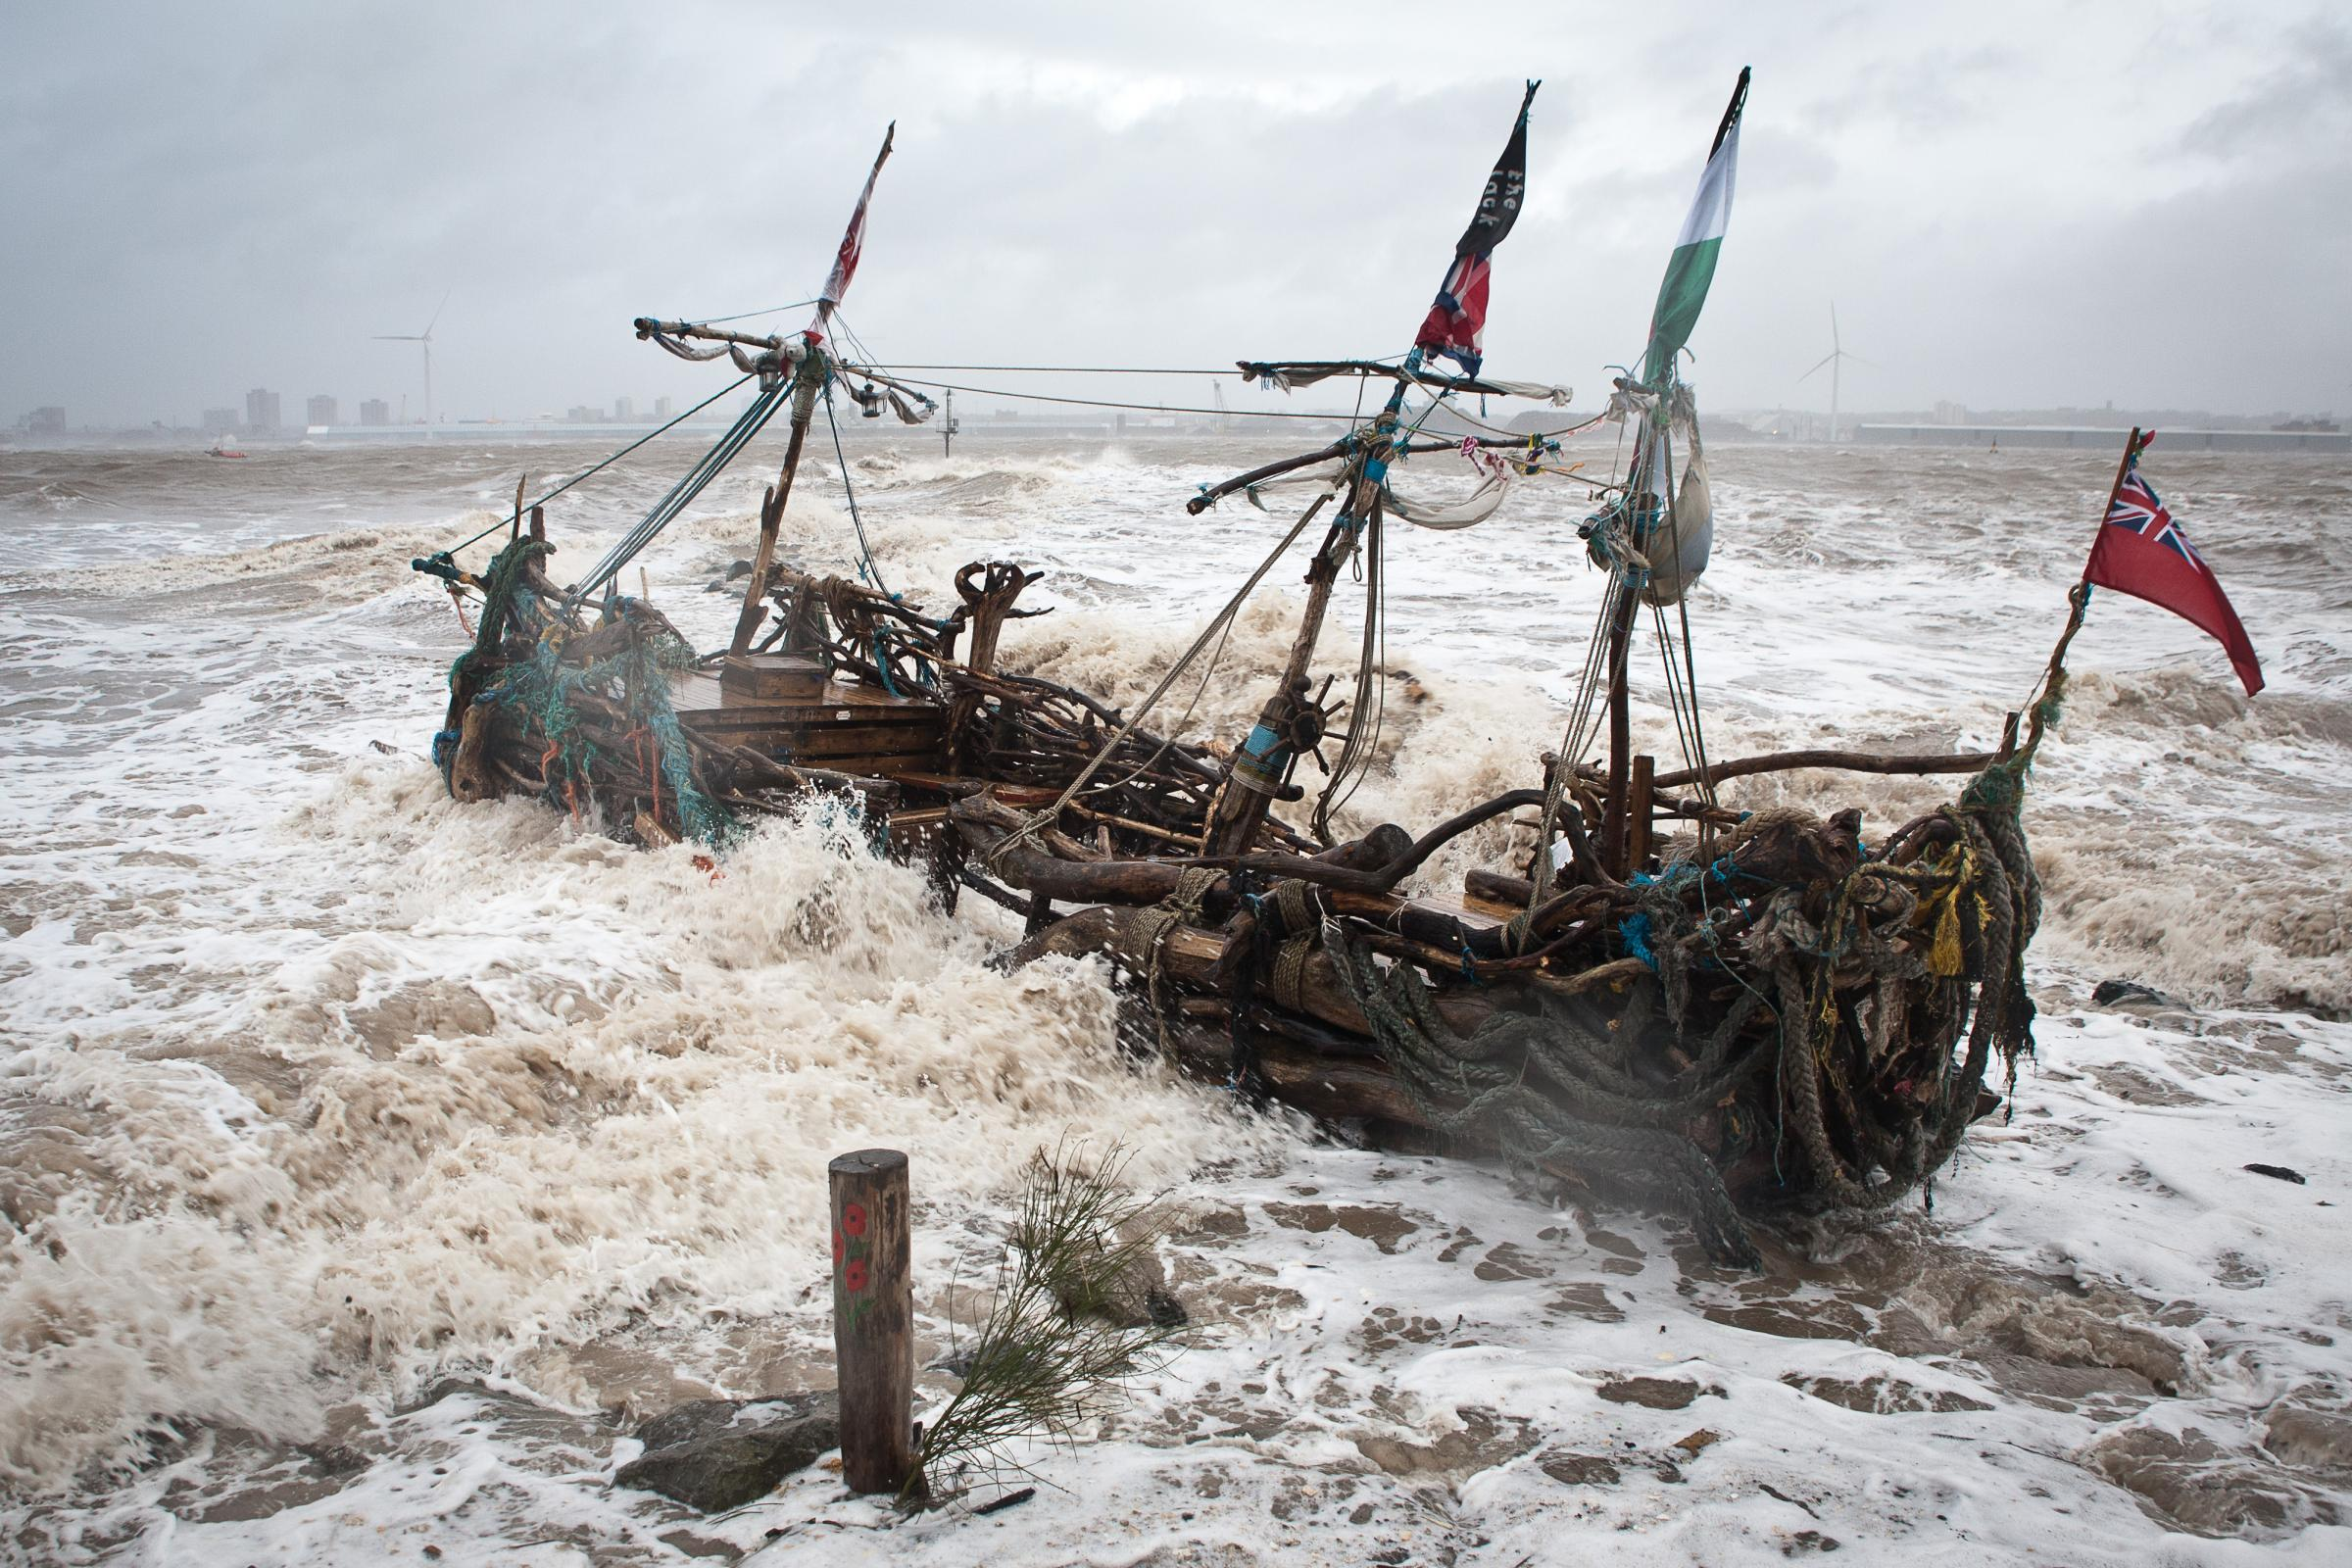 Wirral Globe: The Black Pearl was washed away during today's extreme weather conditions.